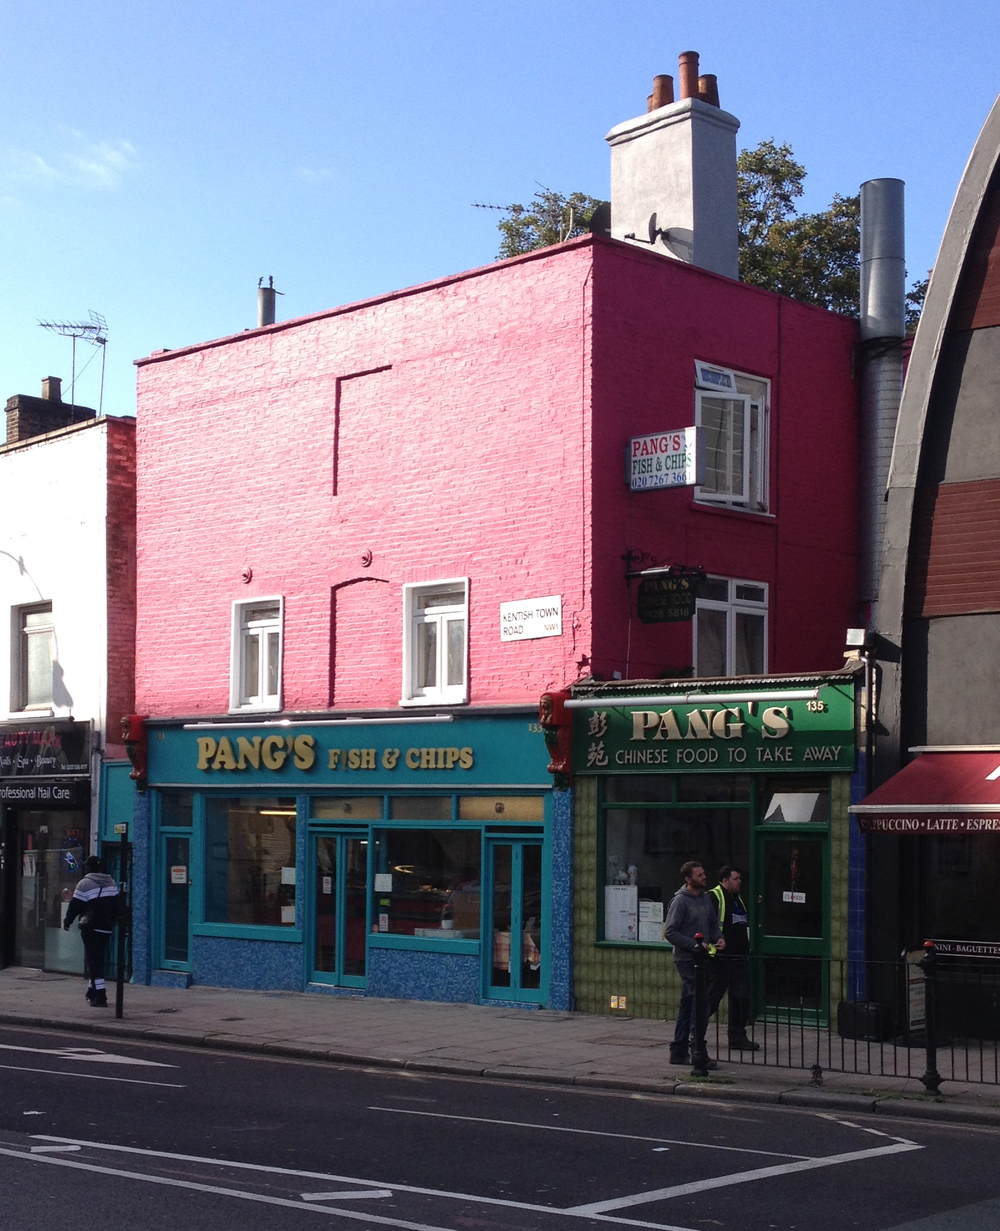 Pang's:one of the oldest buildings in Kentish Town